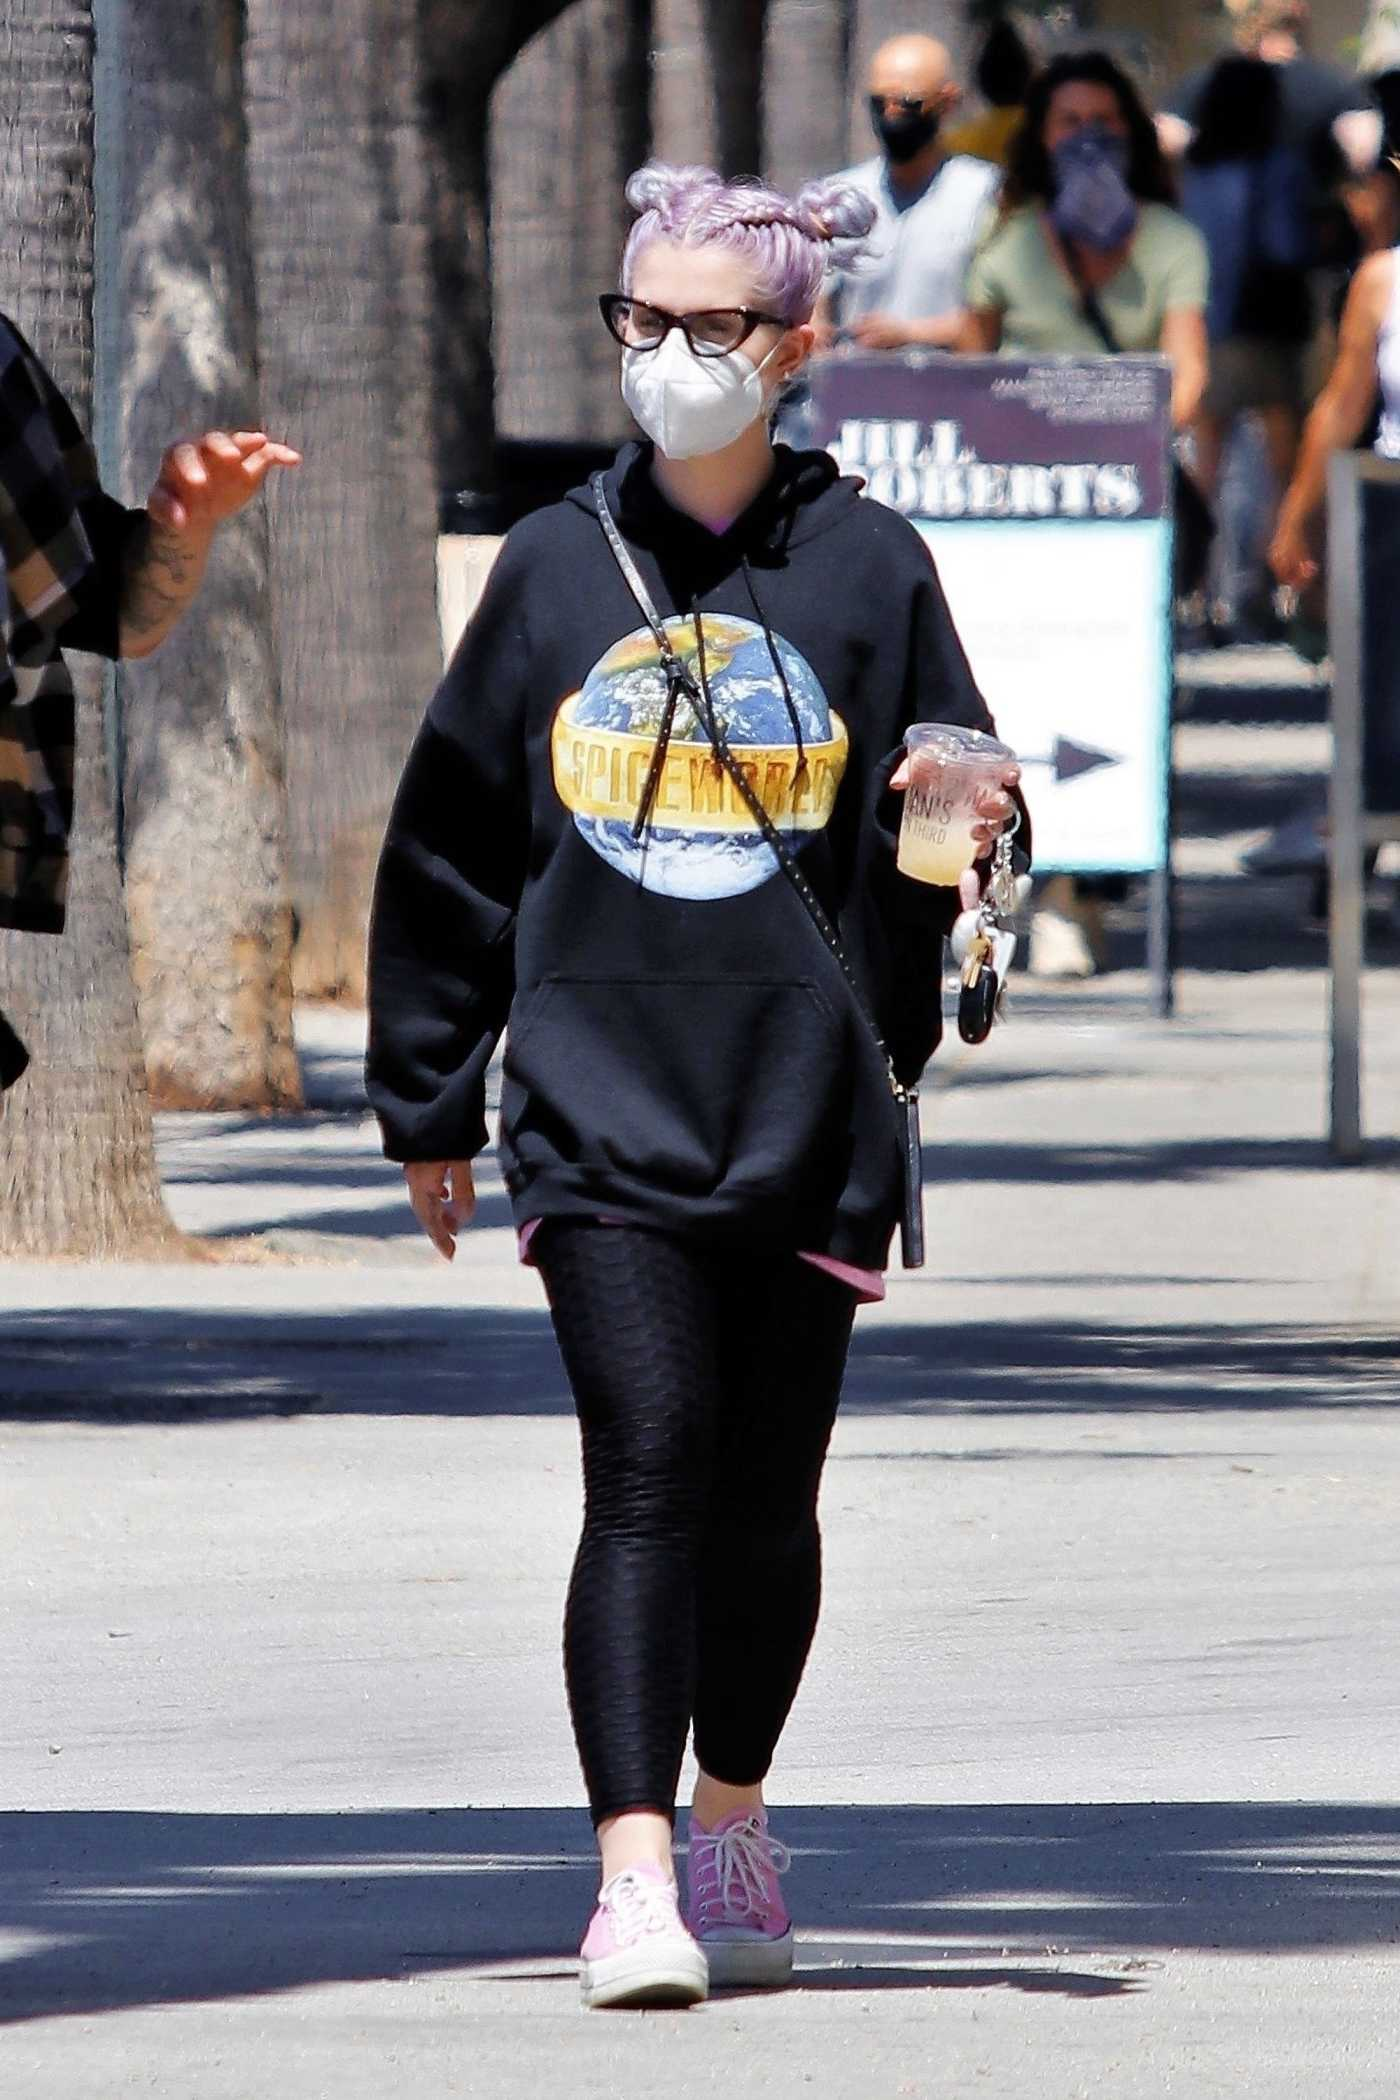 Kelly Osbourne in a Black Hoody Exits Joan's on Third in Los Angeles 08/08/2020